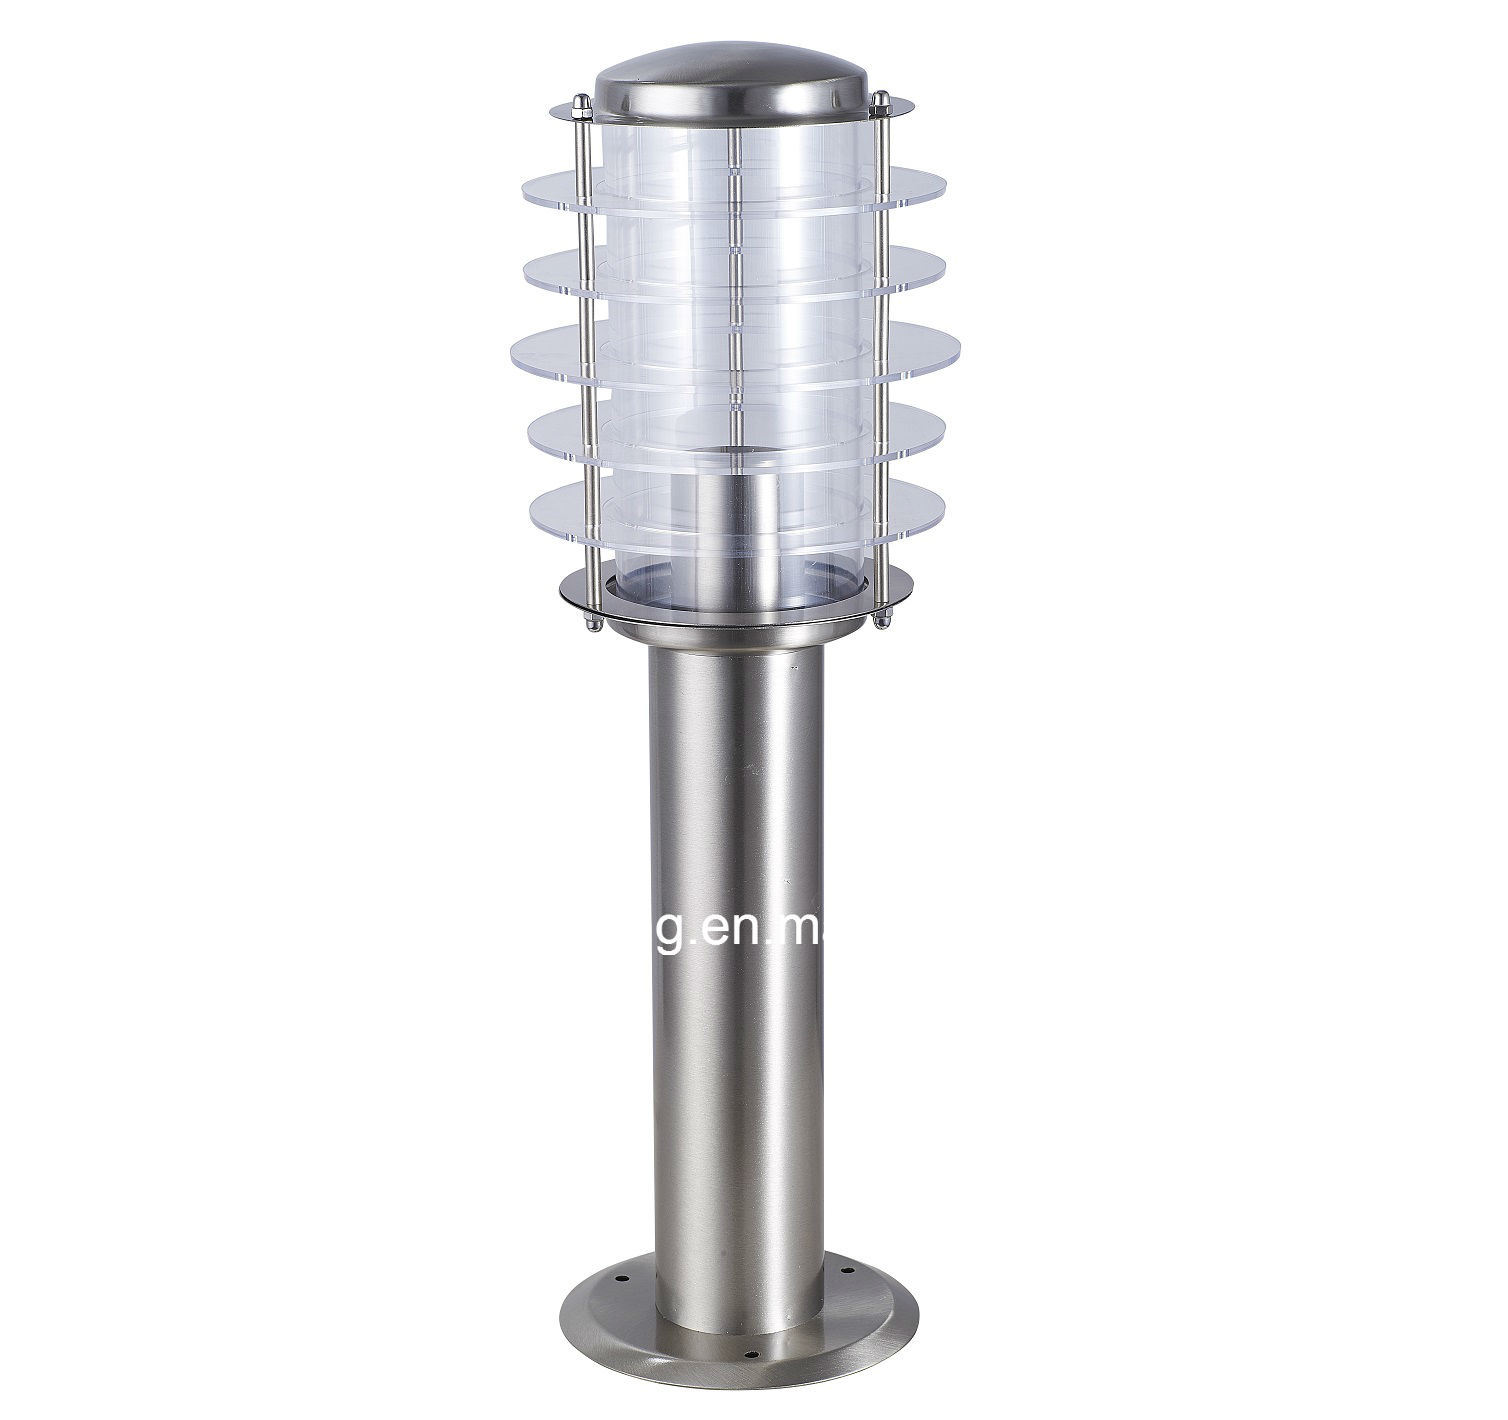 Clear Grating Stainless Steel Outdoor Light with Ce Certificate (5047-450)